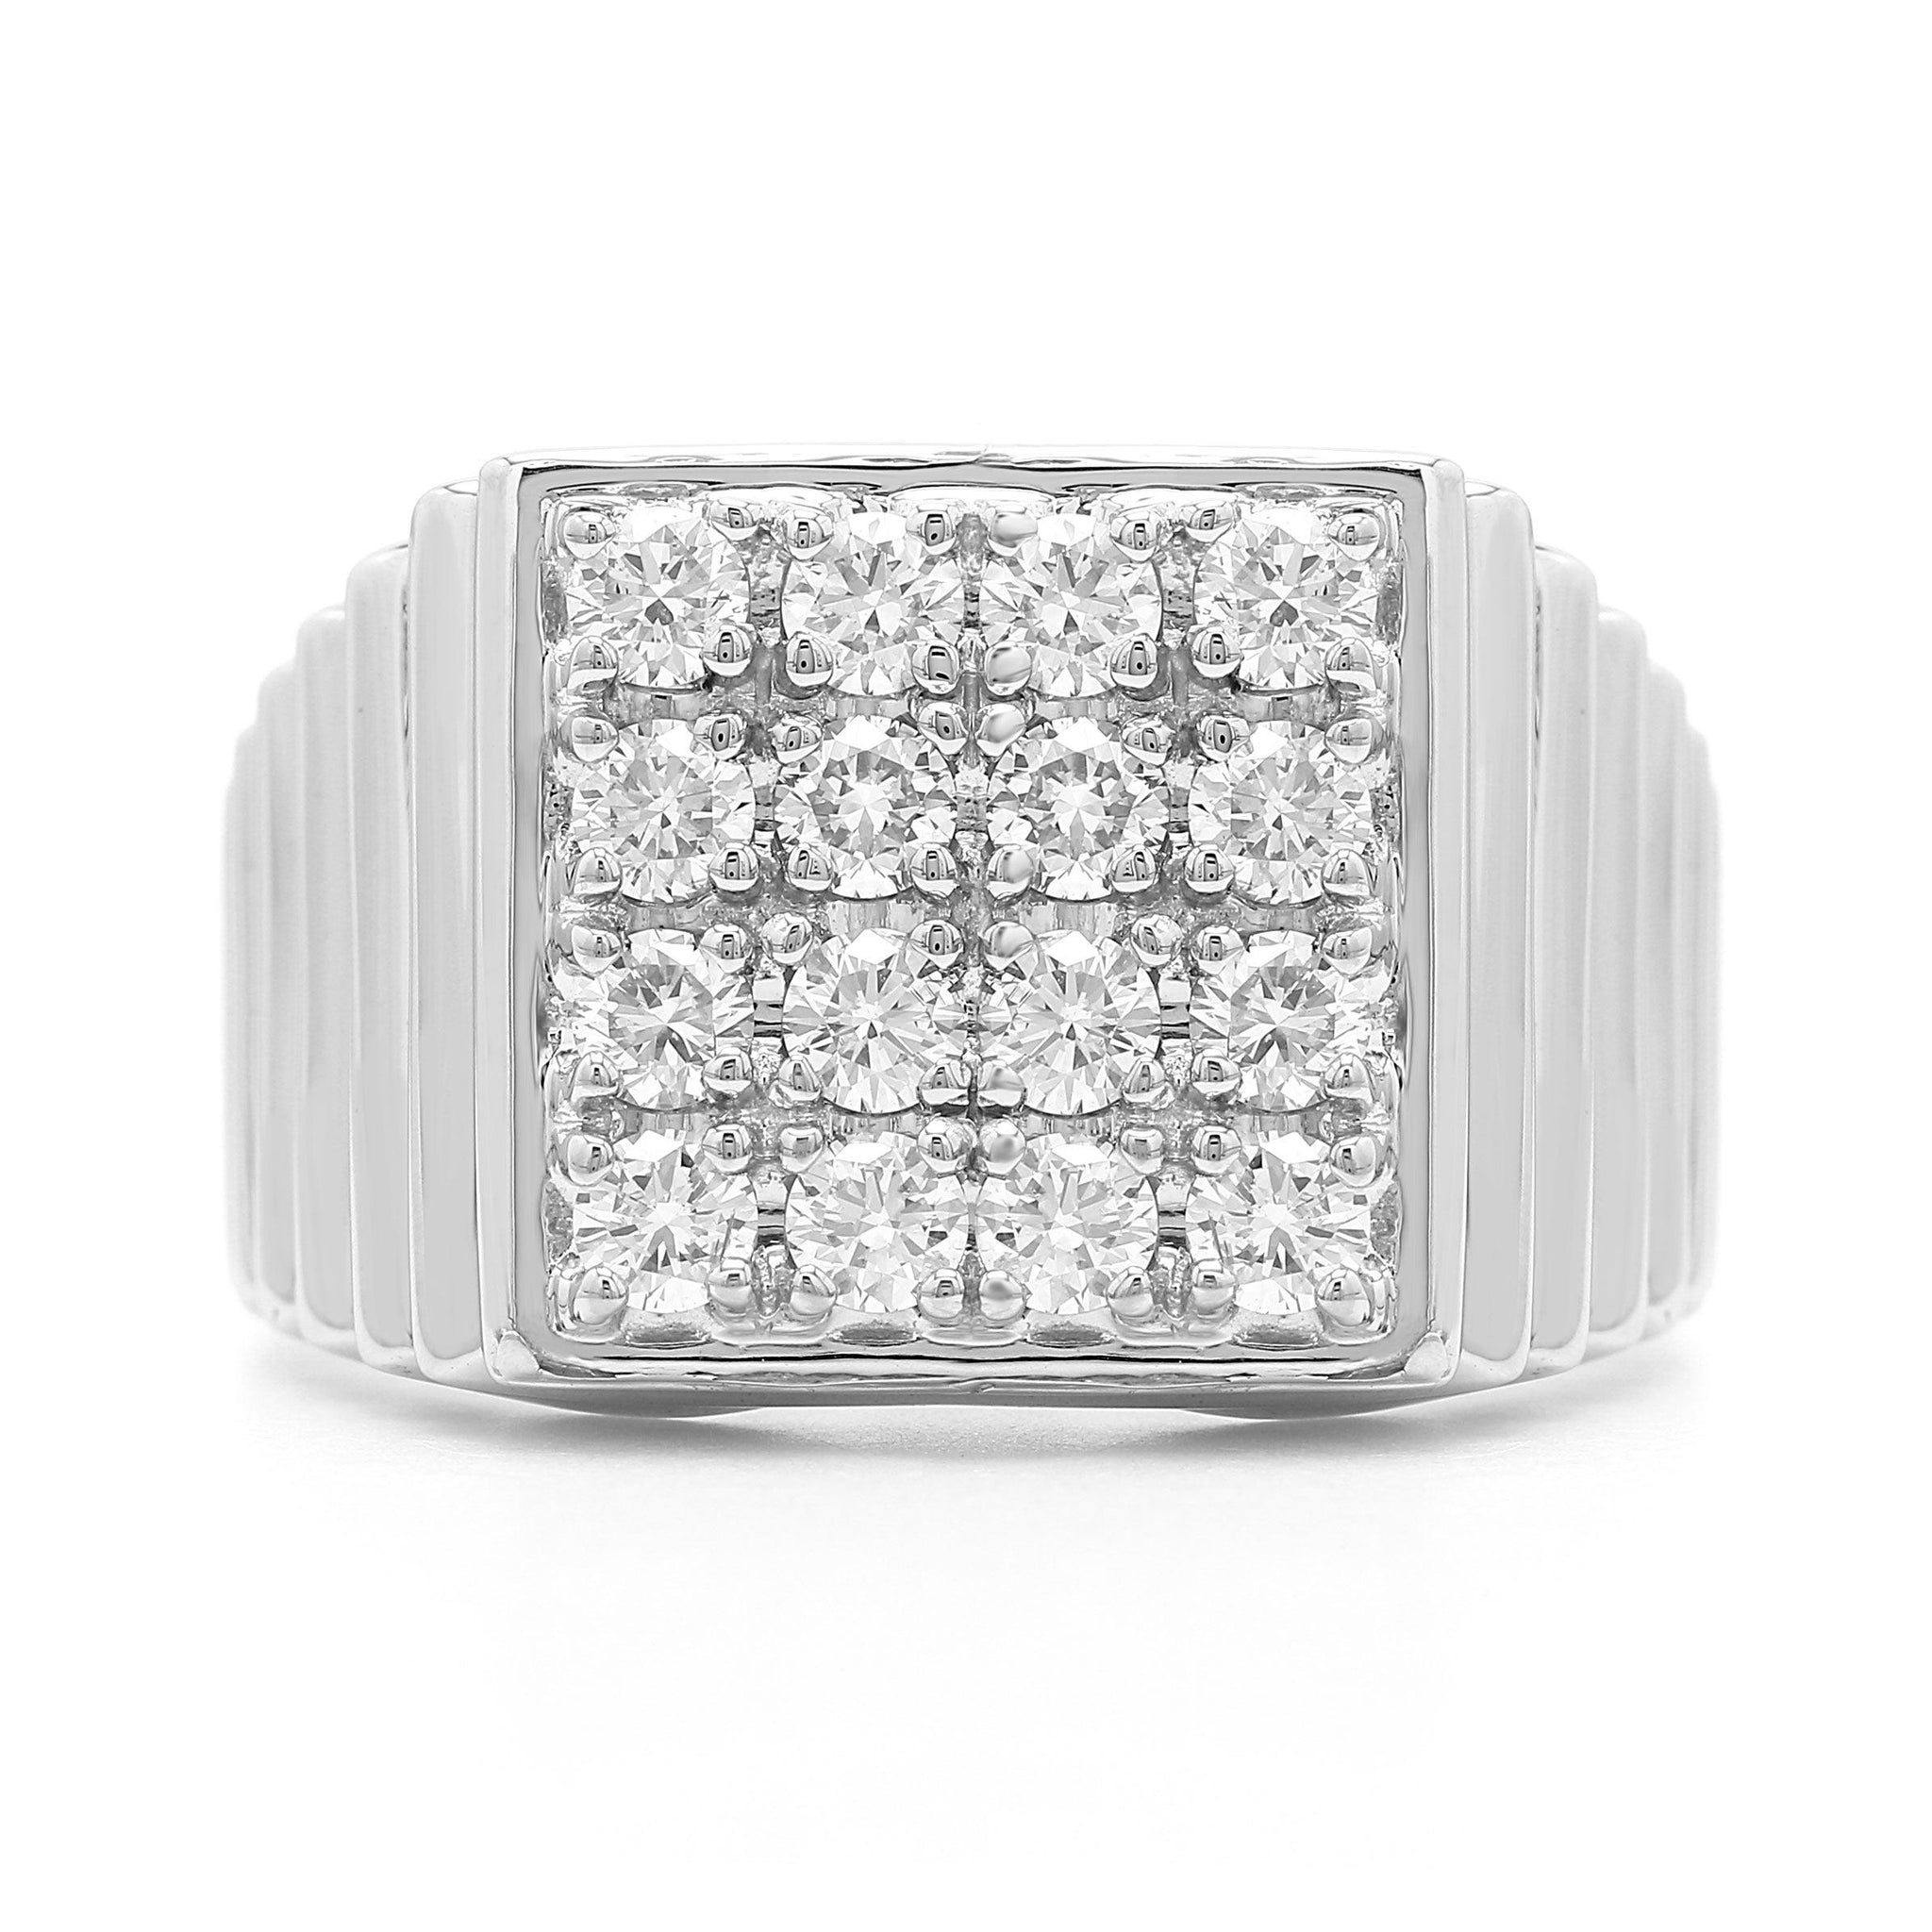 1.00 Ct. T.W. Lab-Grown Diamond Men's Ring 14K White Gold